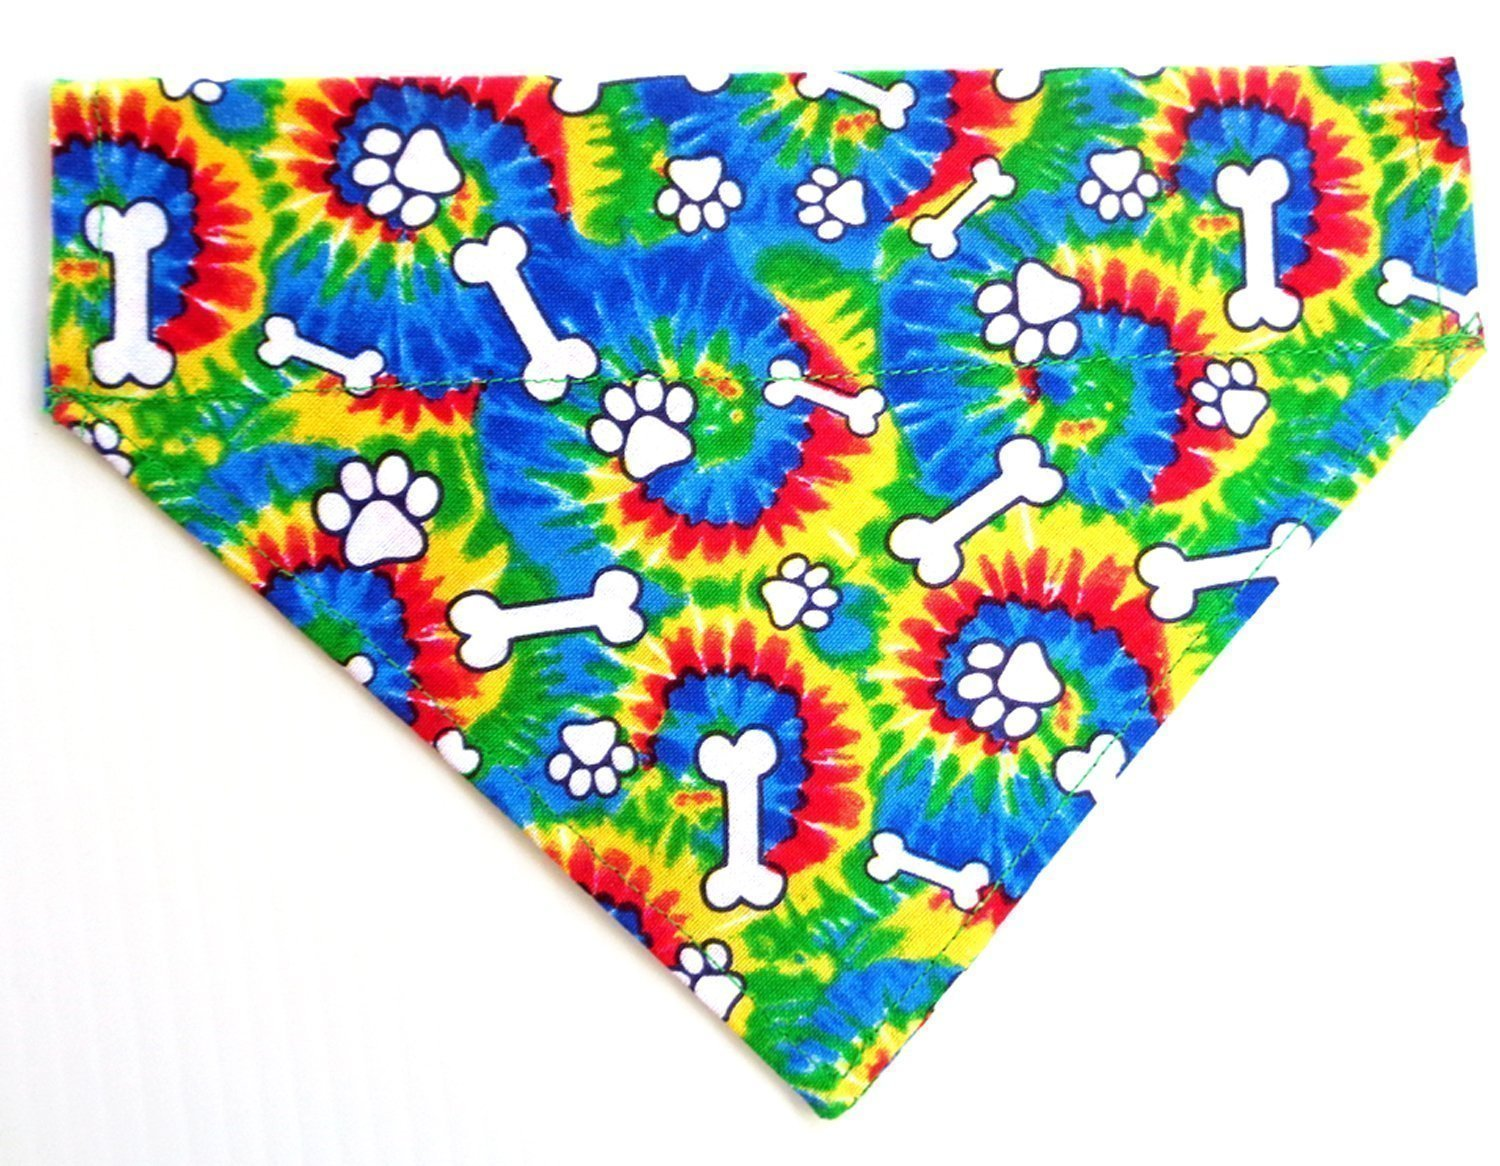 Reversible Tie-Dye Paws and Bones Prints Dog Bandana, Doggie Accessories, Thread Thru Slip Through Over the Collar Petwear